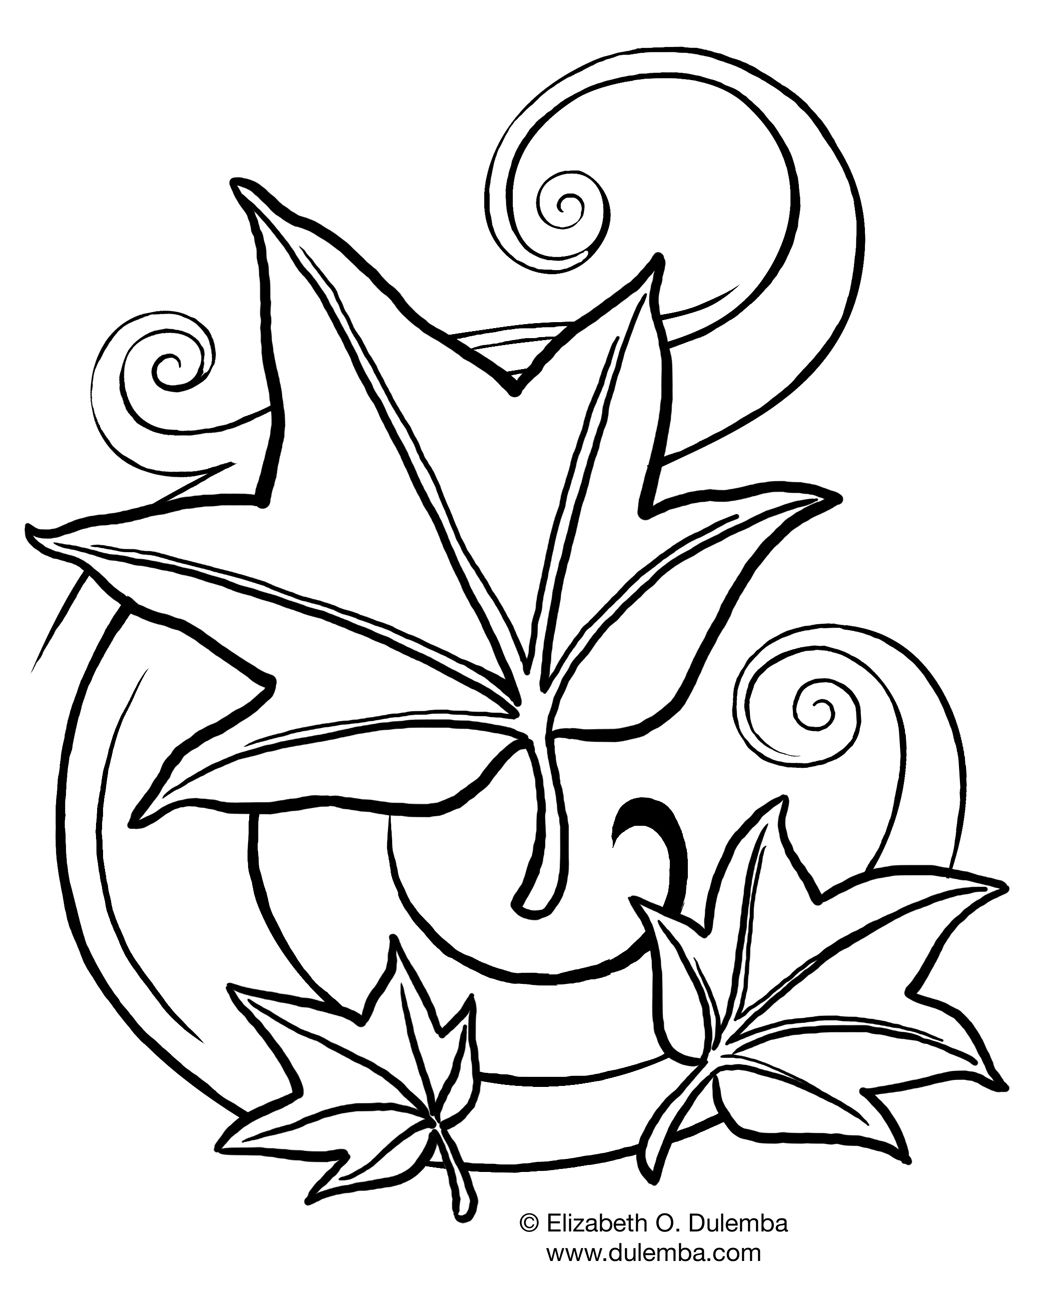 FallColoringPages  Free Fall Coloring Pages for Kids  BLKWHT